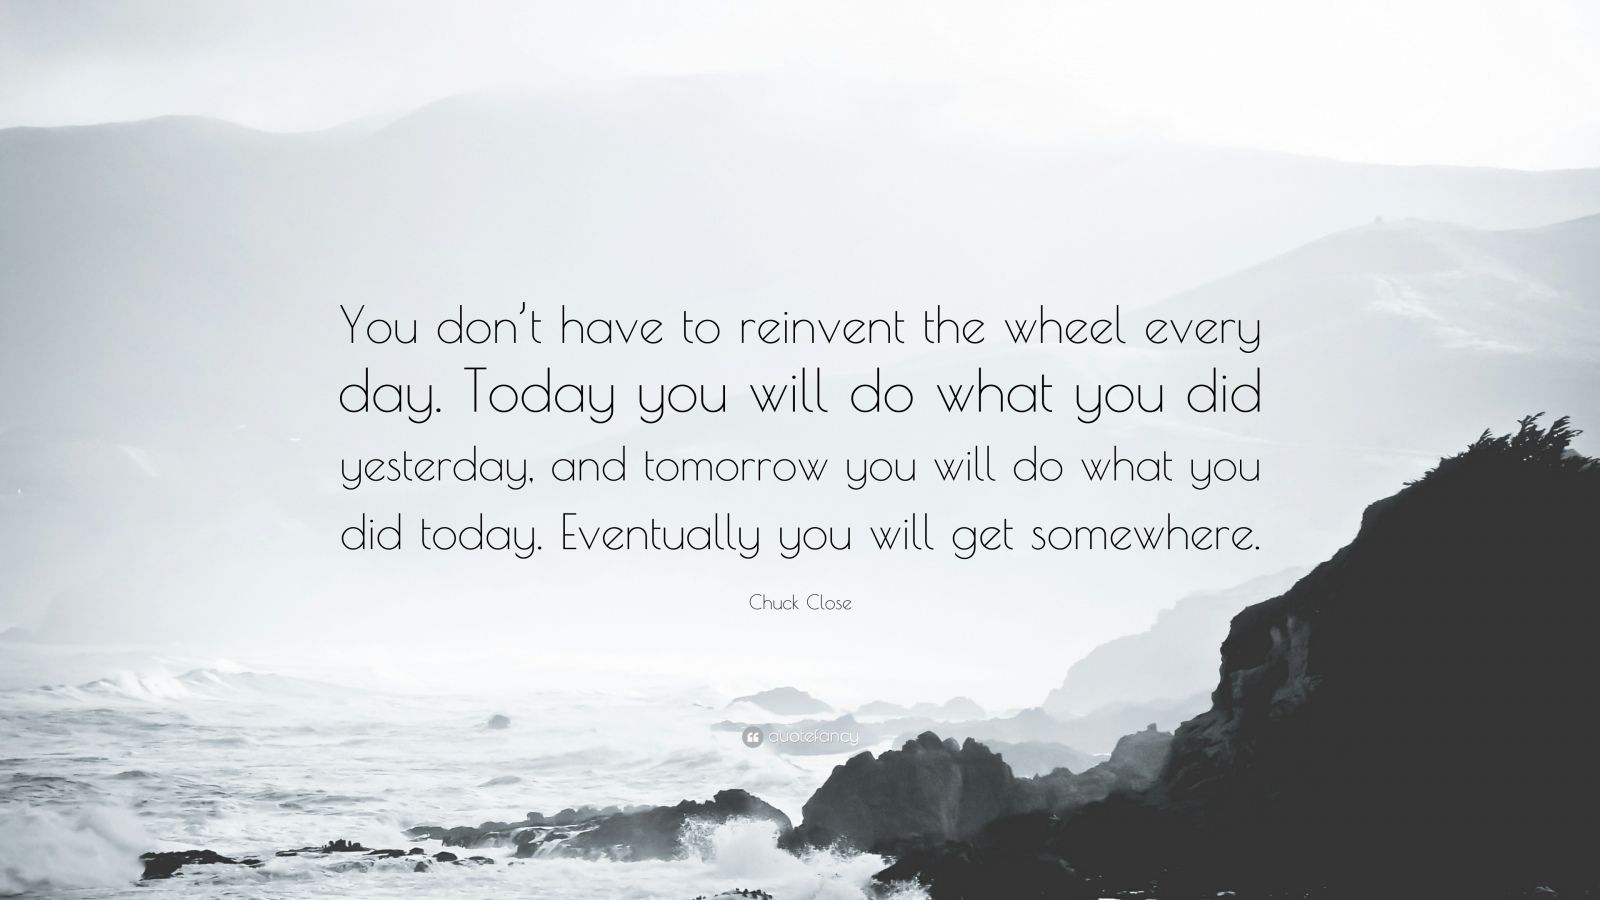 """Chuck Close Quote: """"You don't have to reinvent the wheel every day. Today you will do what you did yesterday, and tomorrow you will do what you did today. Eventually you will get somewhere."""""""